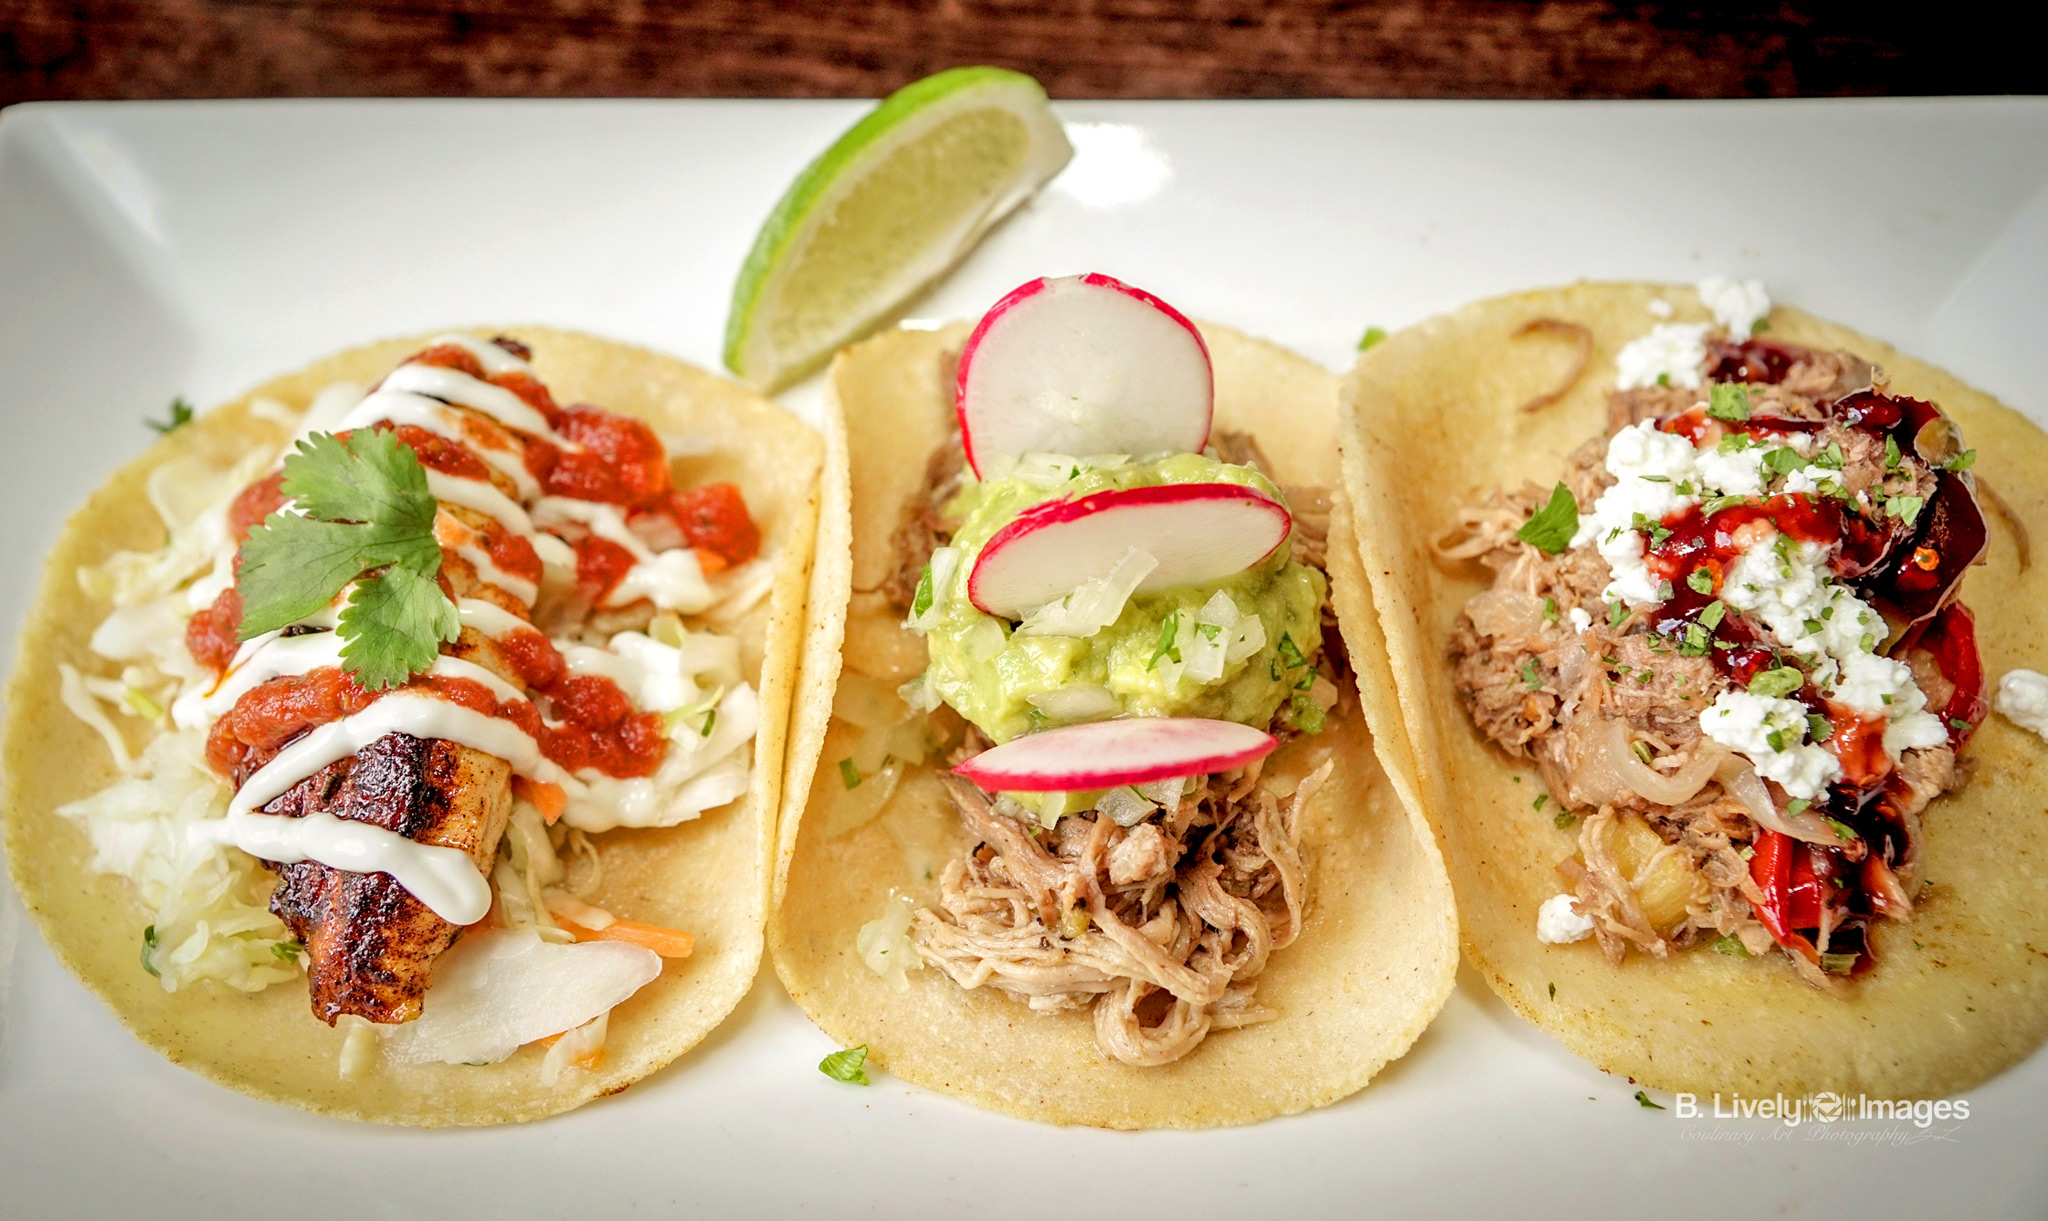 Tacos - Baja Fish - Grilled fresh fish, salsa roja, Mexican slaw and lime crema. Pulled Pork - Shredded roast pork, guacamole, cilantro onion and radish. Duck - Orange braised duck confit, grilled pineapple, goat cheese, cilantro and red chile jelly